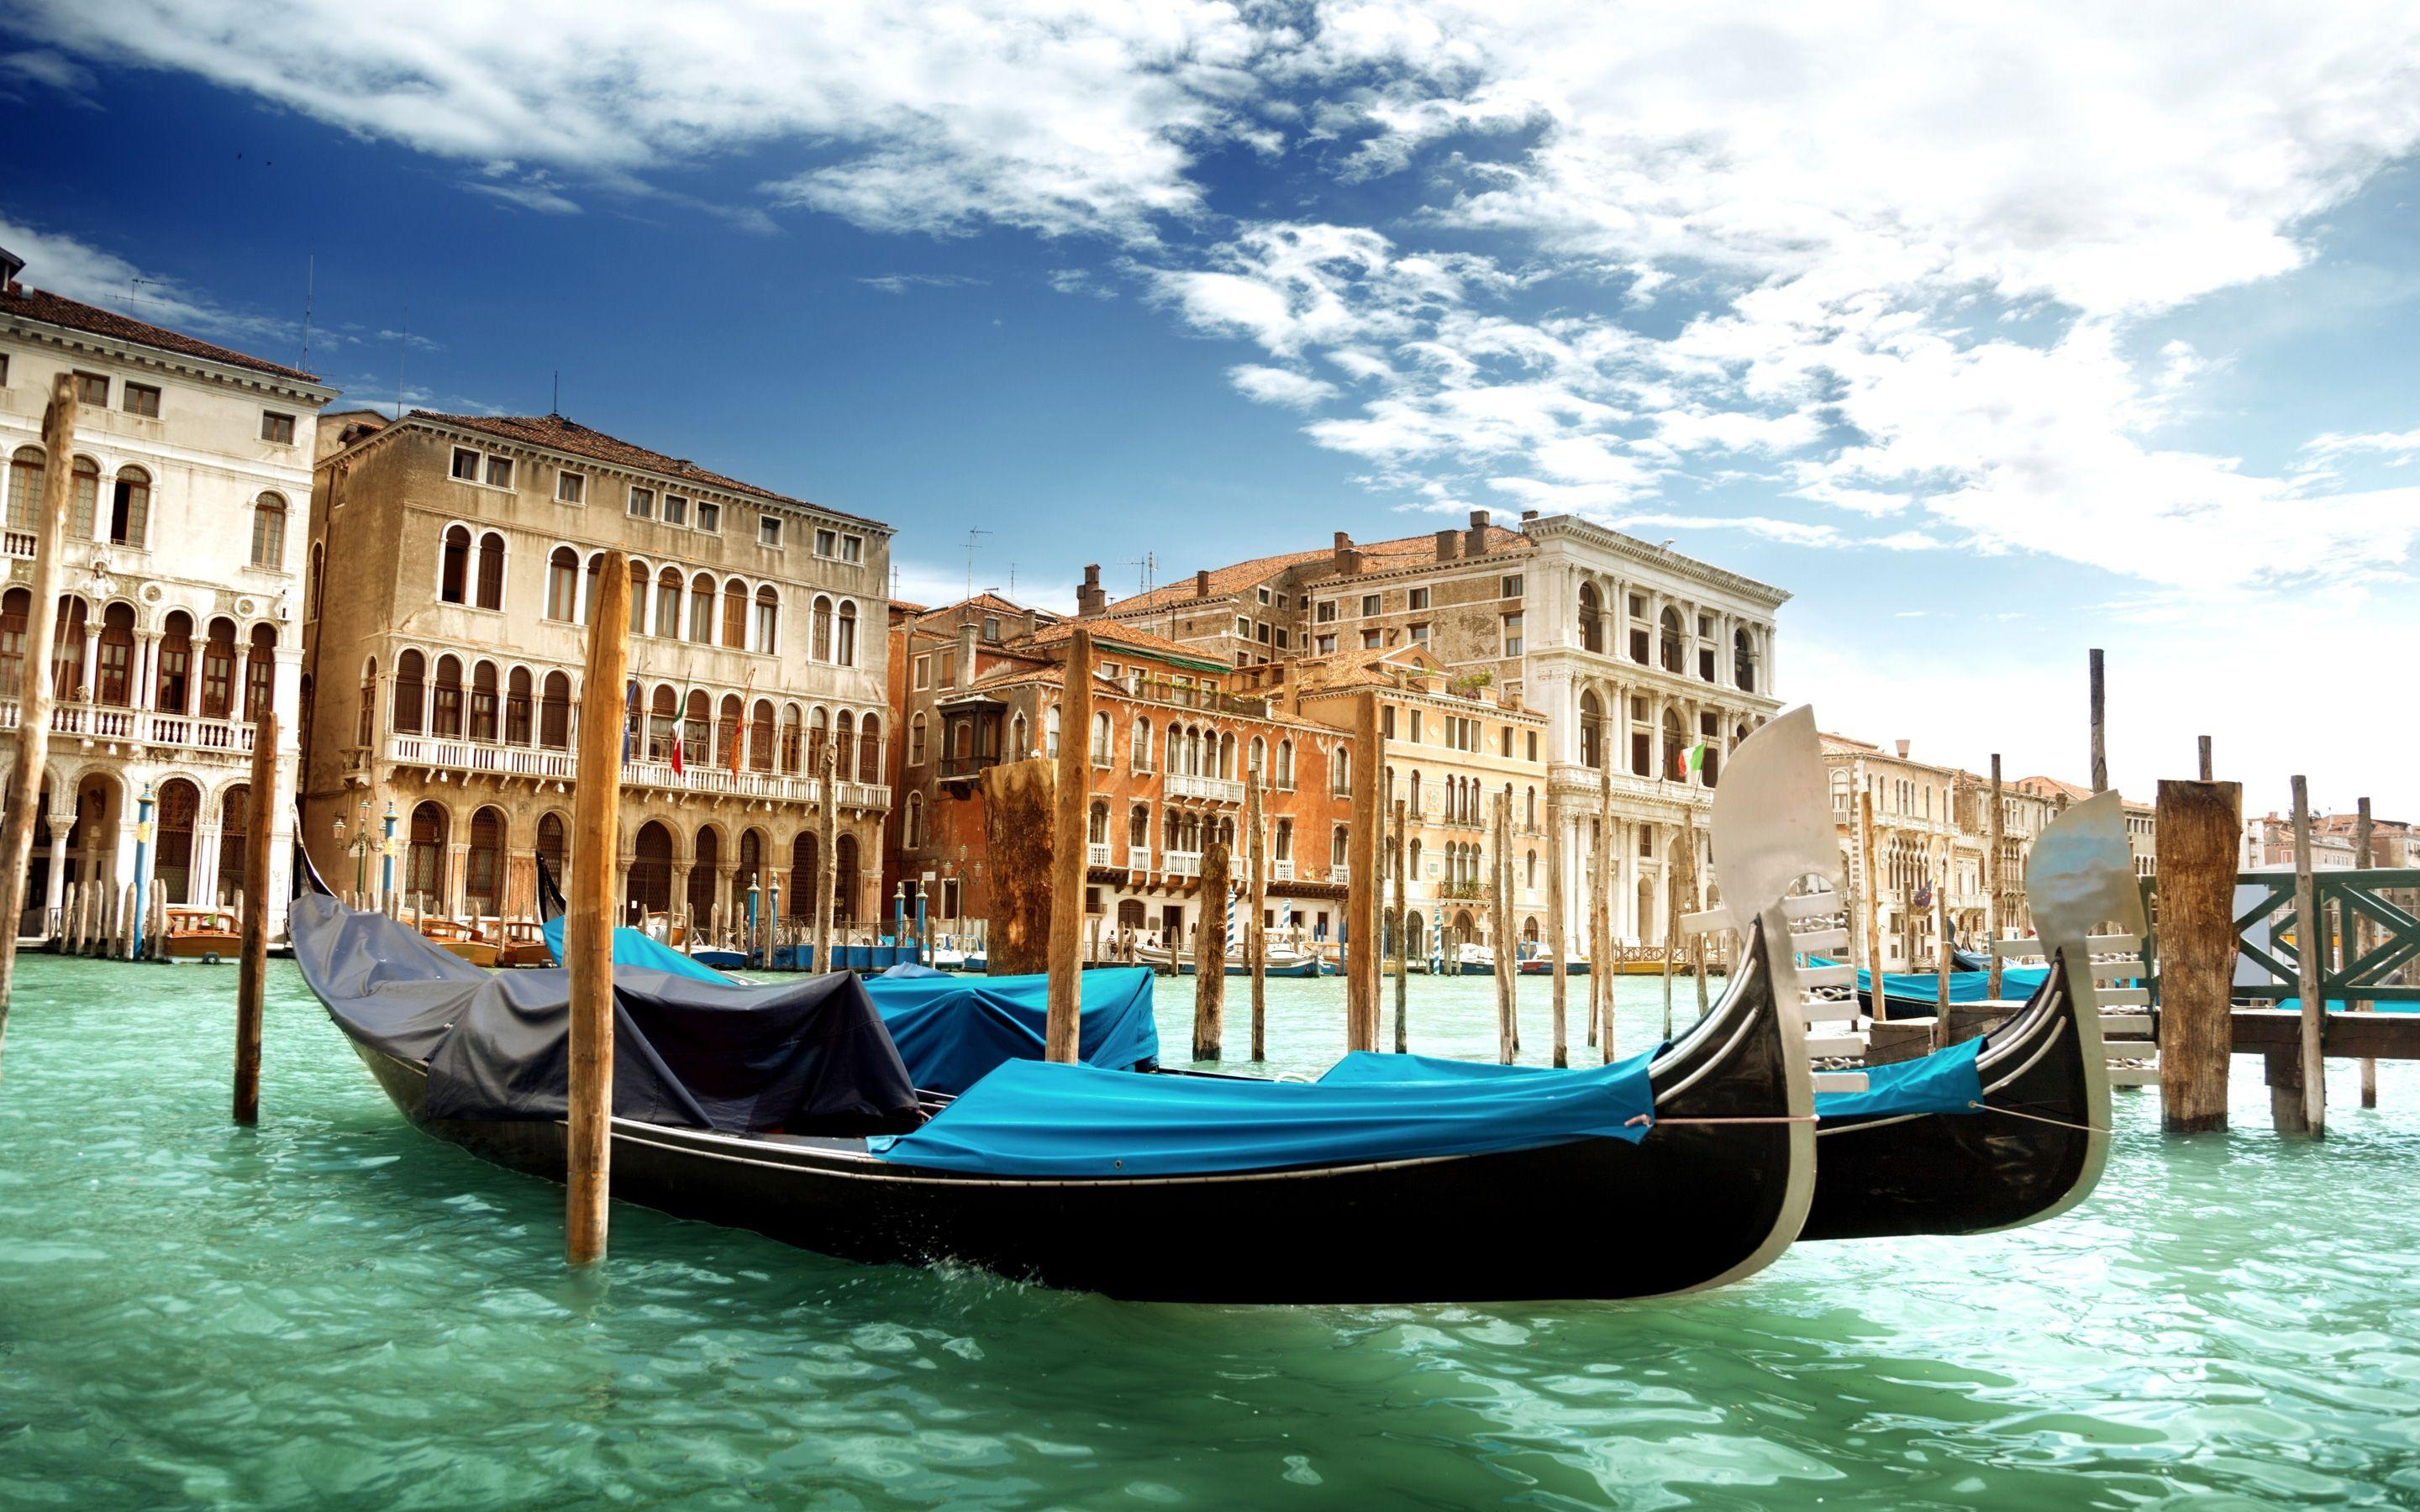 18203 venice boat wallpapers